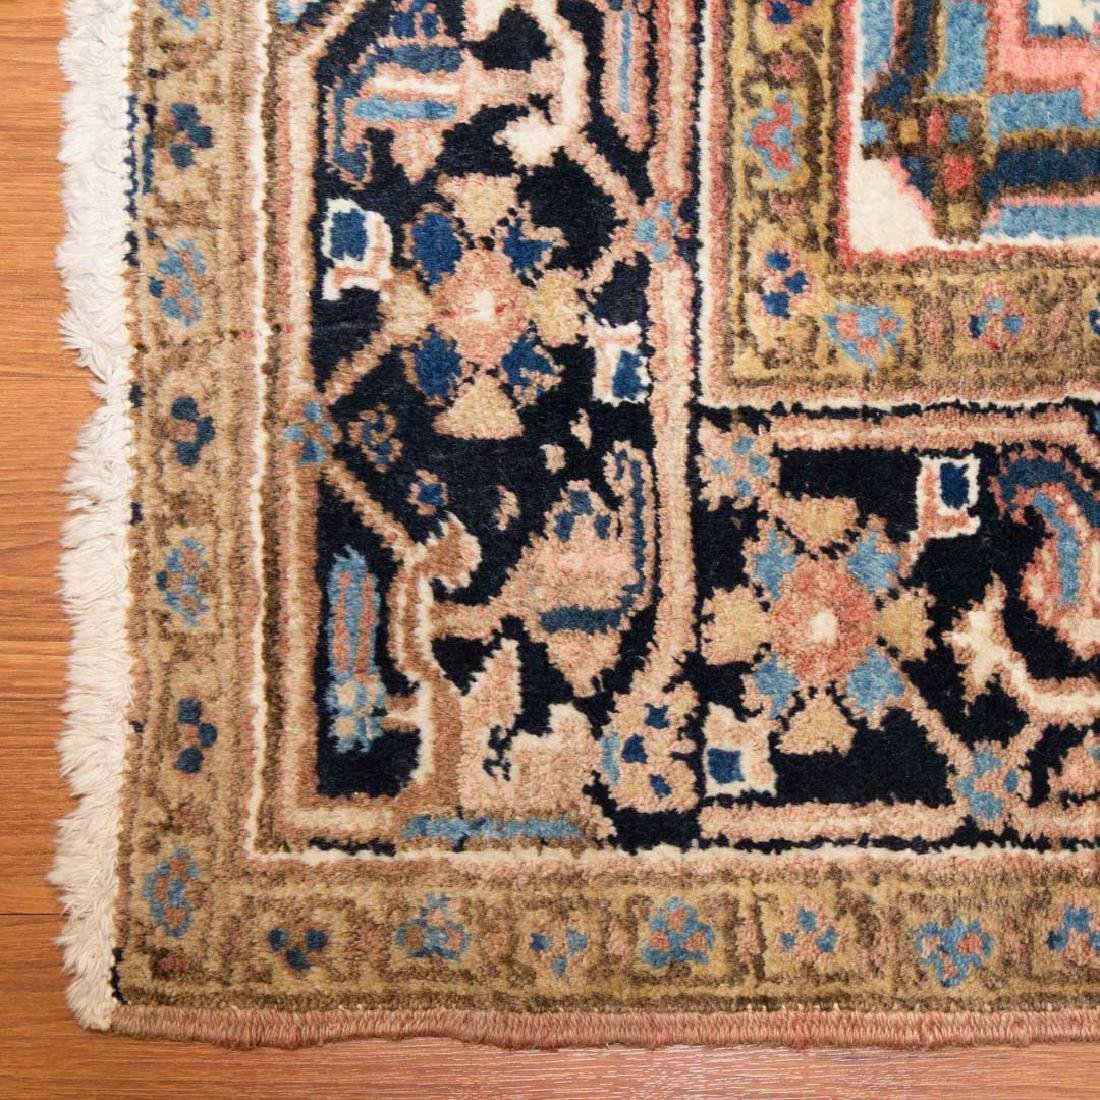 Persian Herez rug, approx. 6.7 x 8.8 - 2